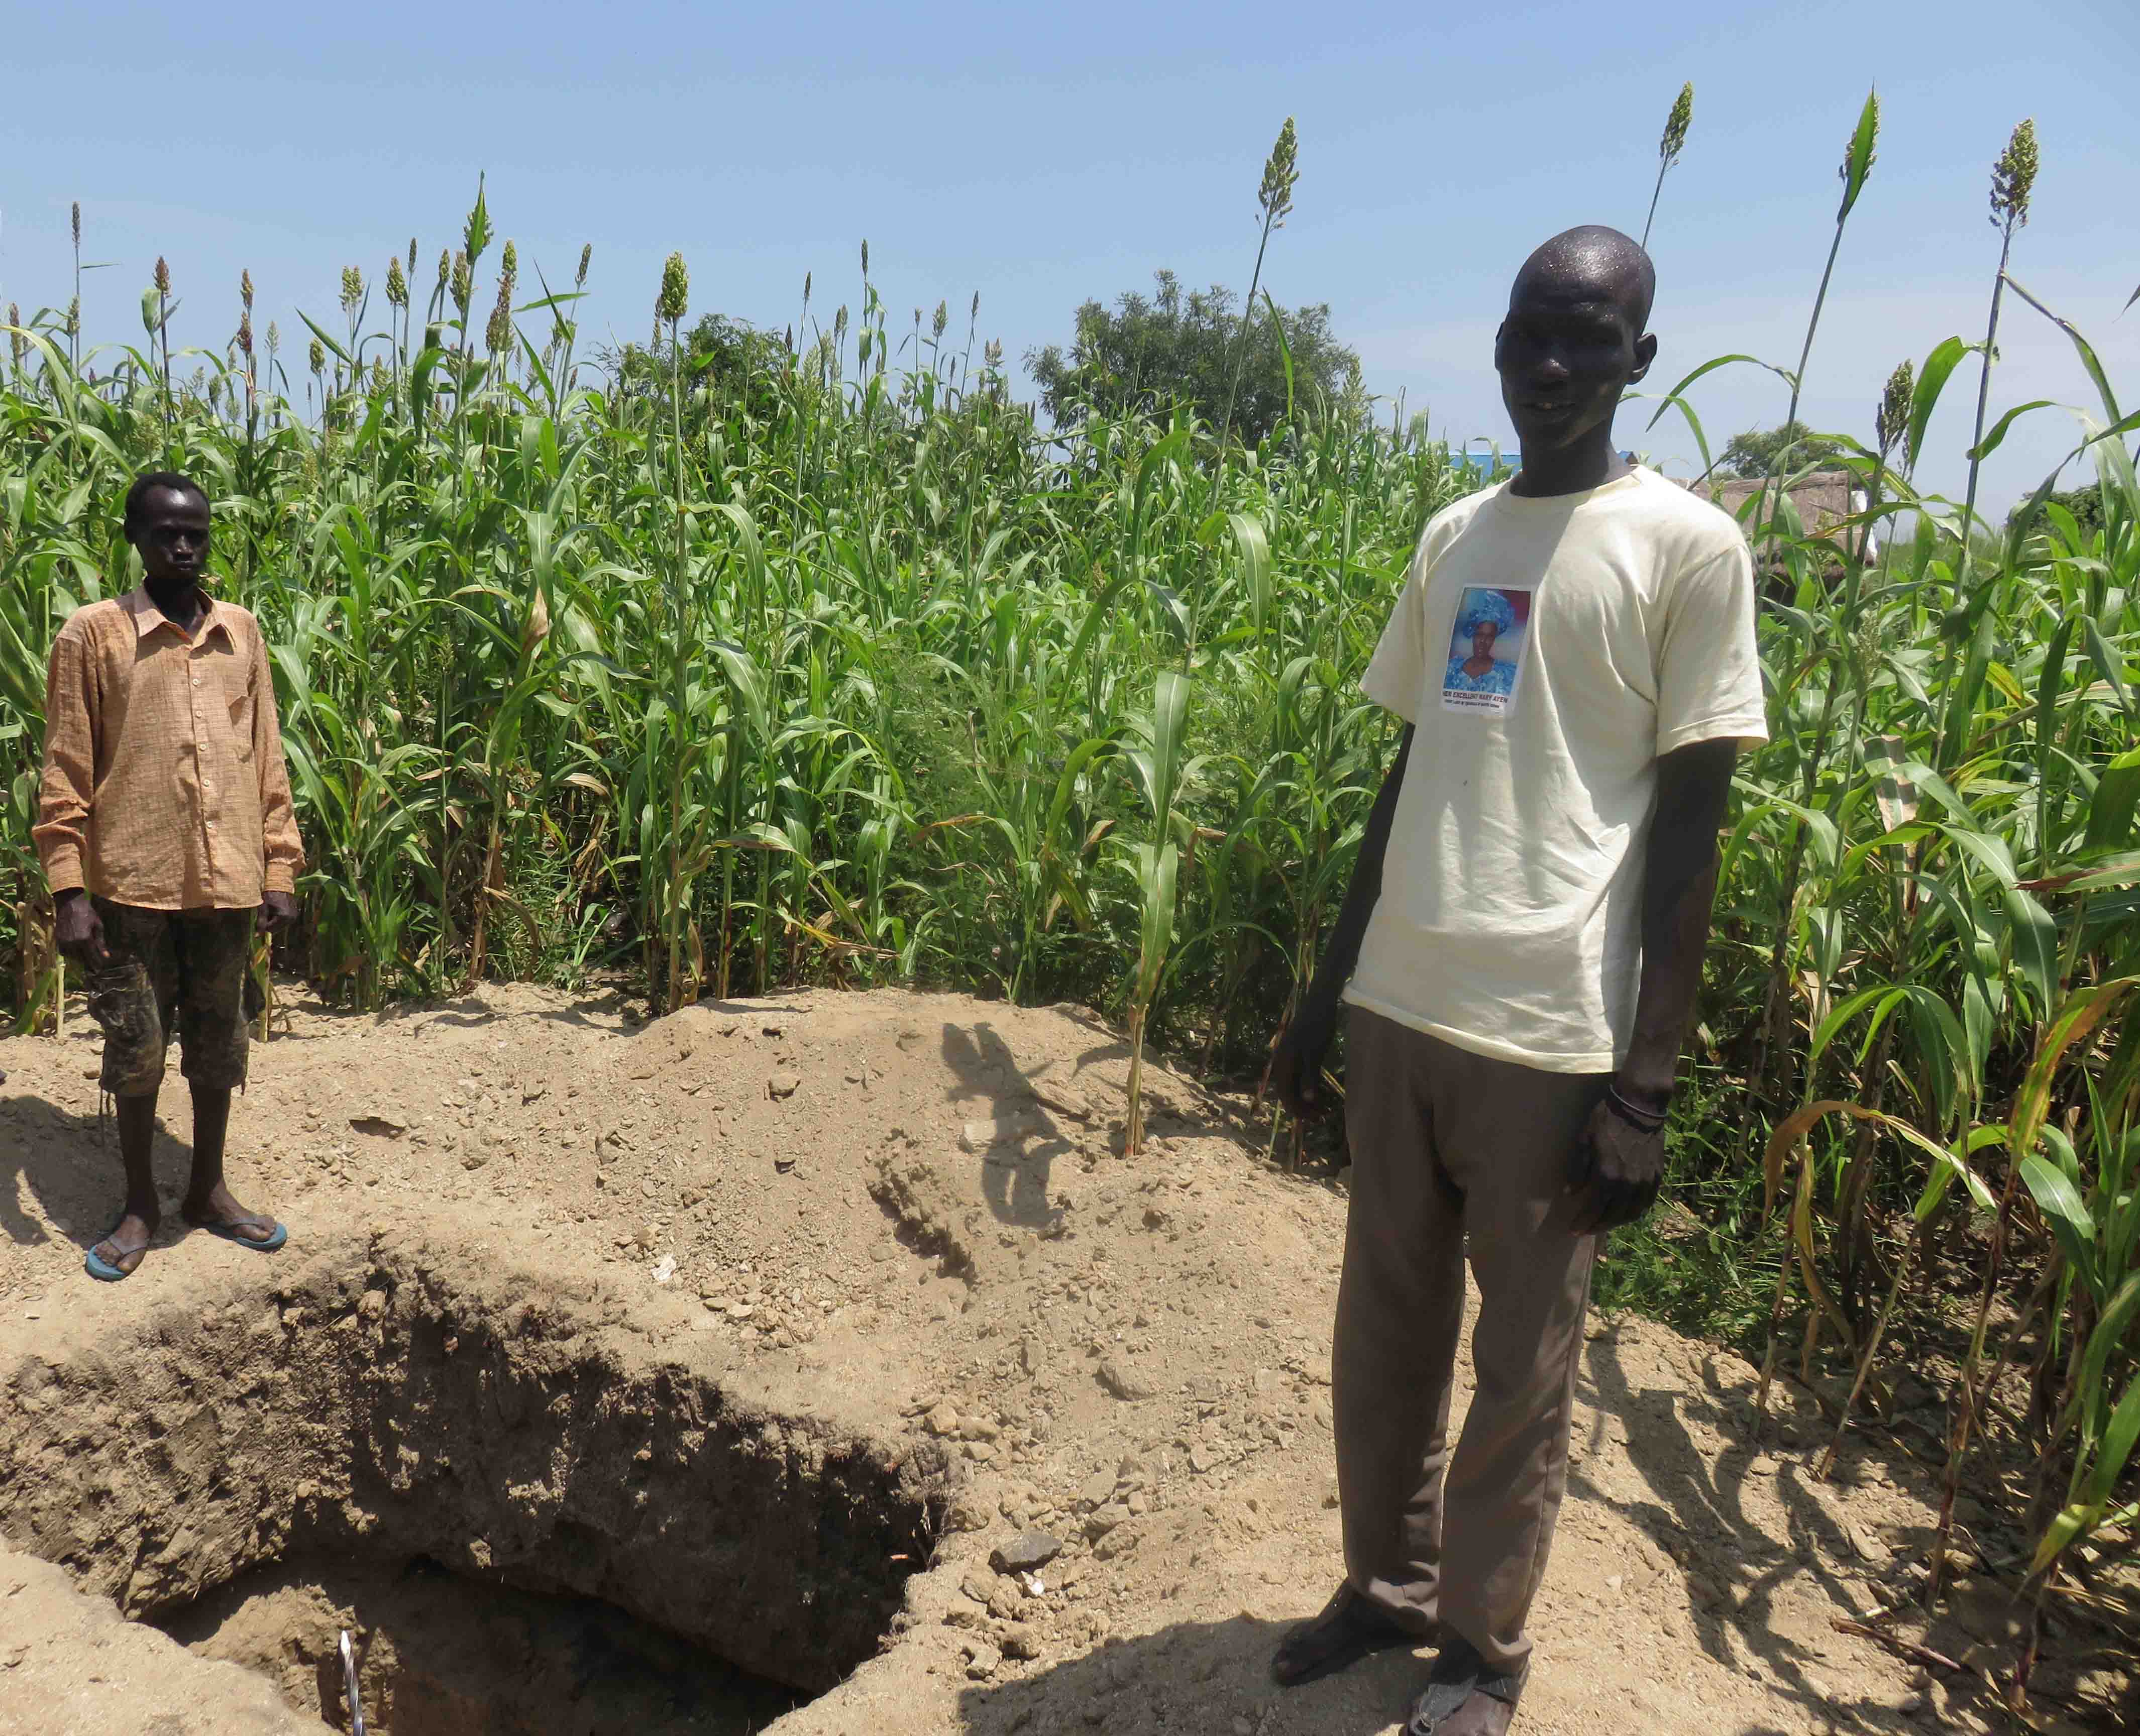 A young man builds latrines with Oxfam's help in Juba, South Sudan